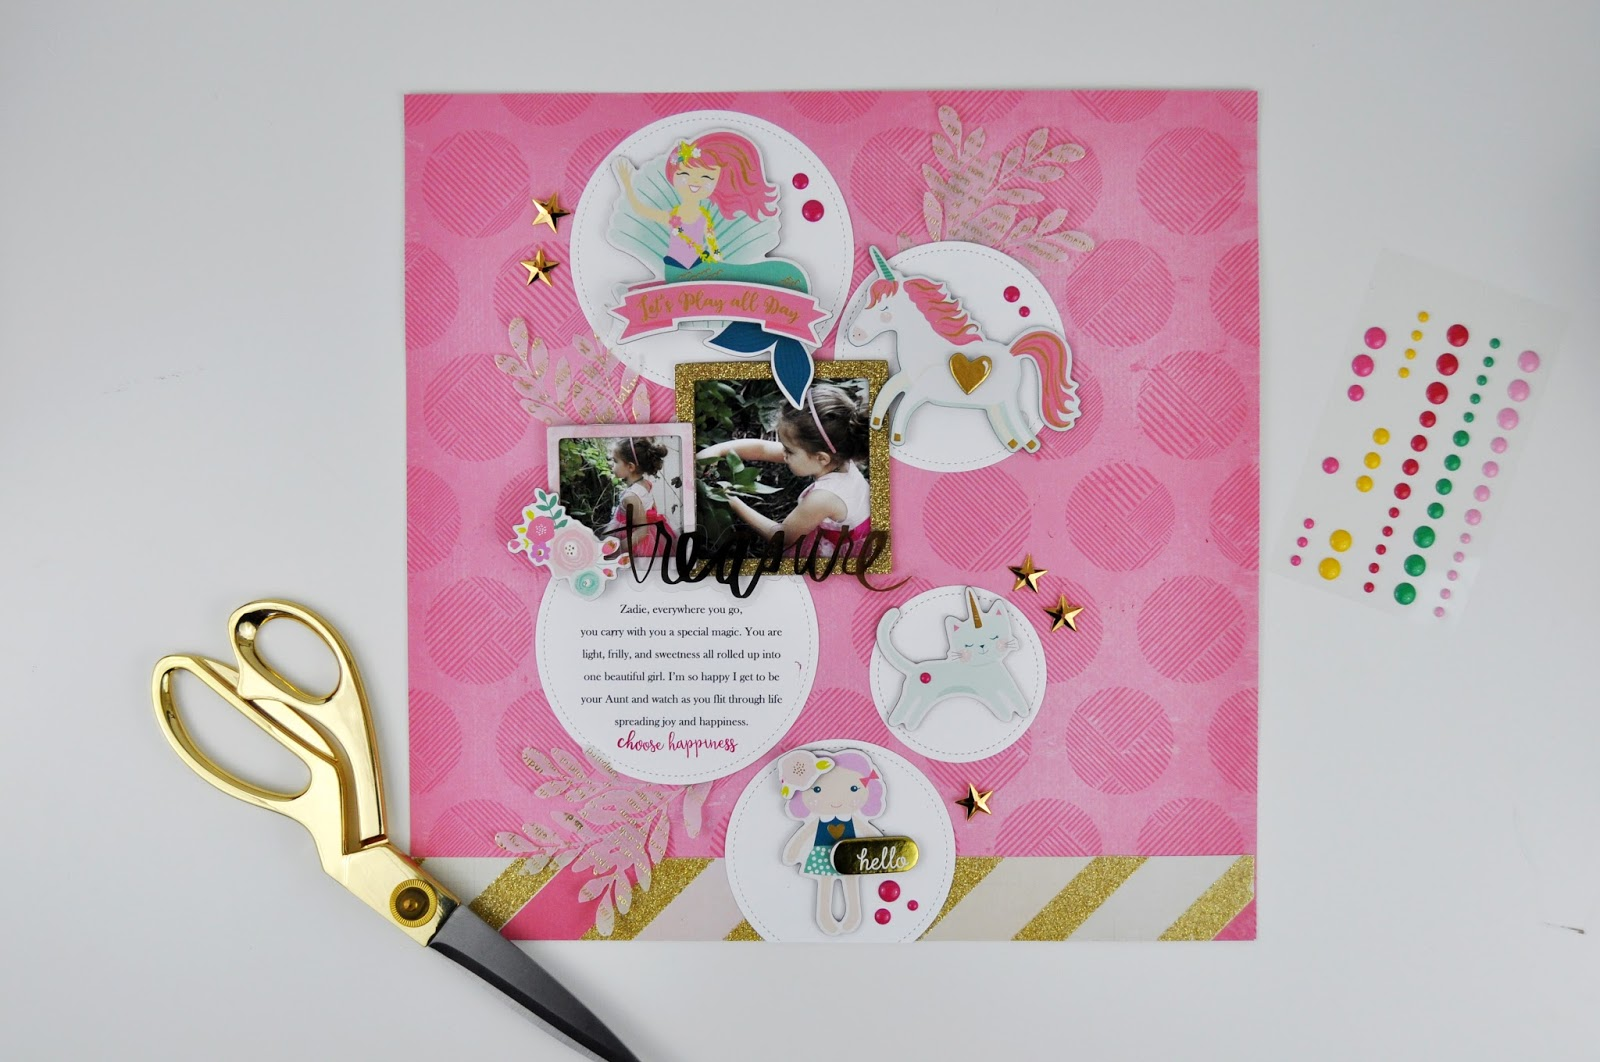 Memories Made #63: Scrapbooking Process video with www.jengallacher.com #scrapbooker #jengallacher #scrapbooking